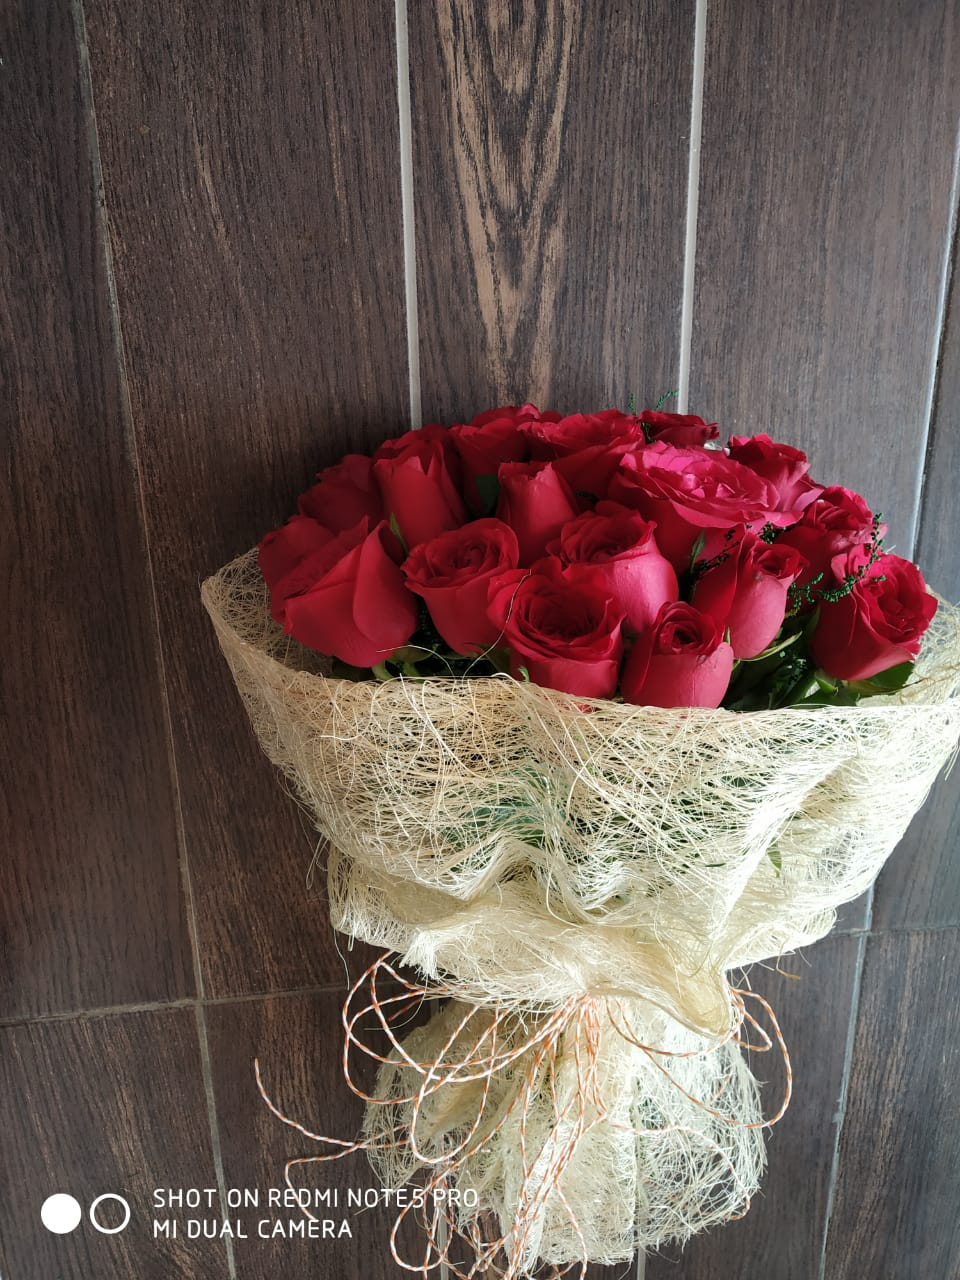 send flower Gadaipur DelhiRed Roses in Jute